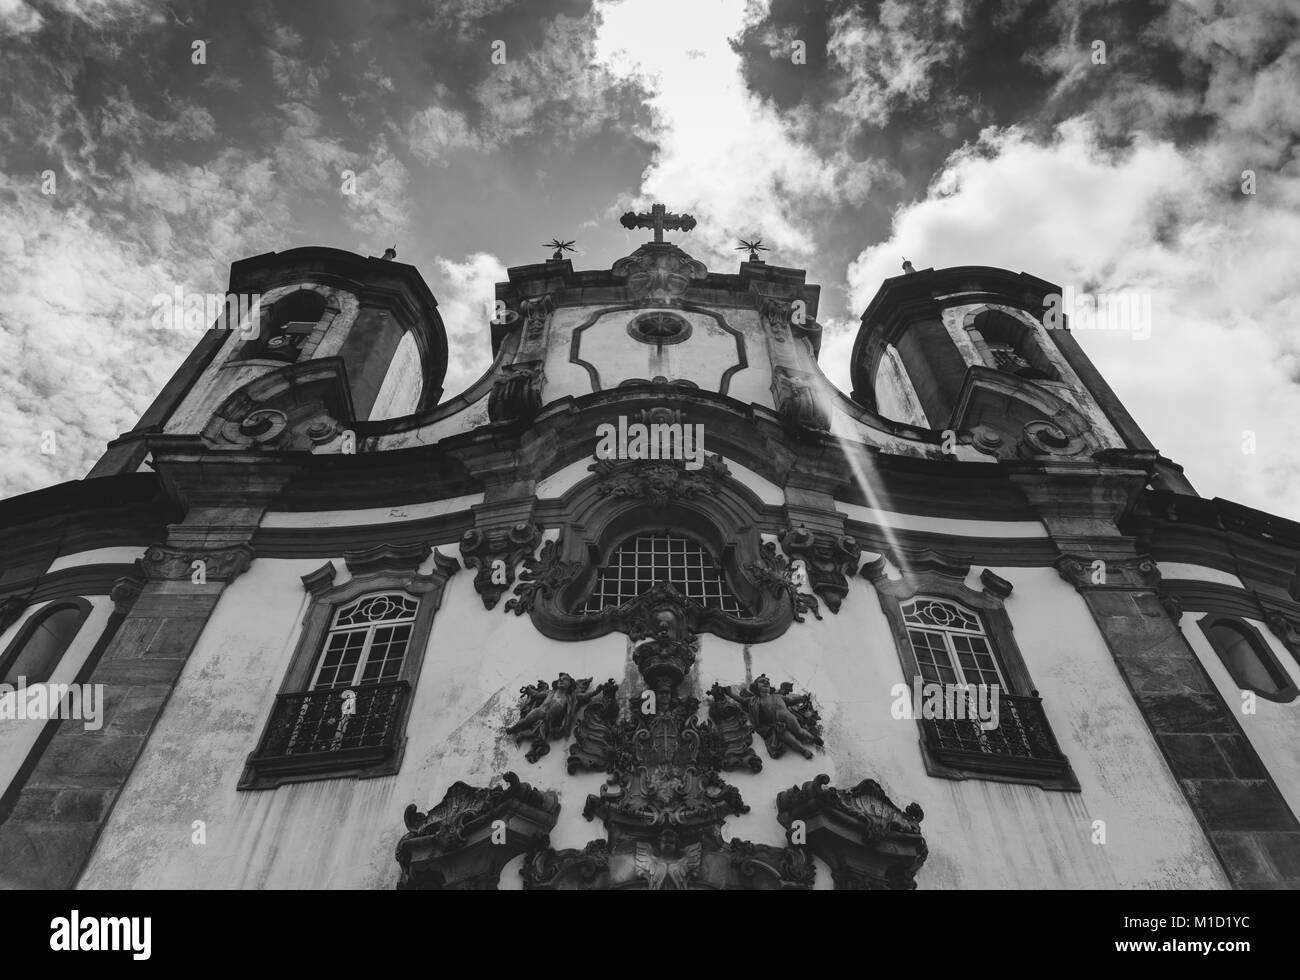 Historic church in Ouro Preto, Minas Gerais, Brazil - Stock Image